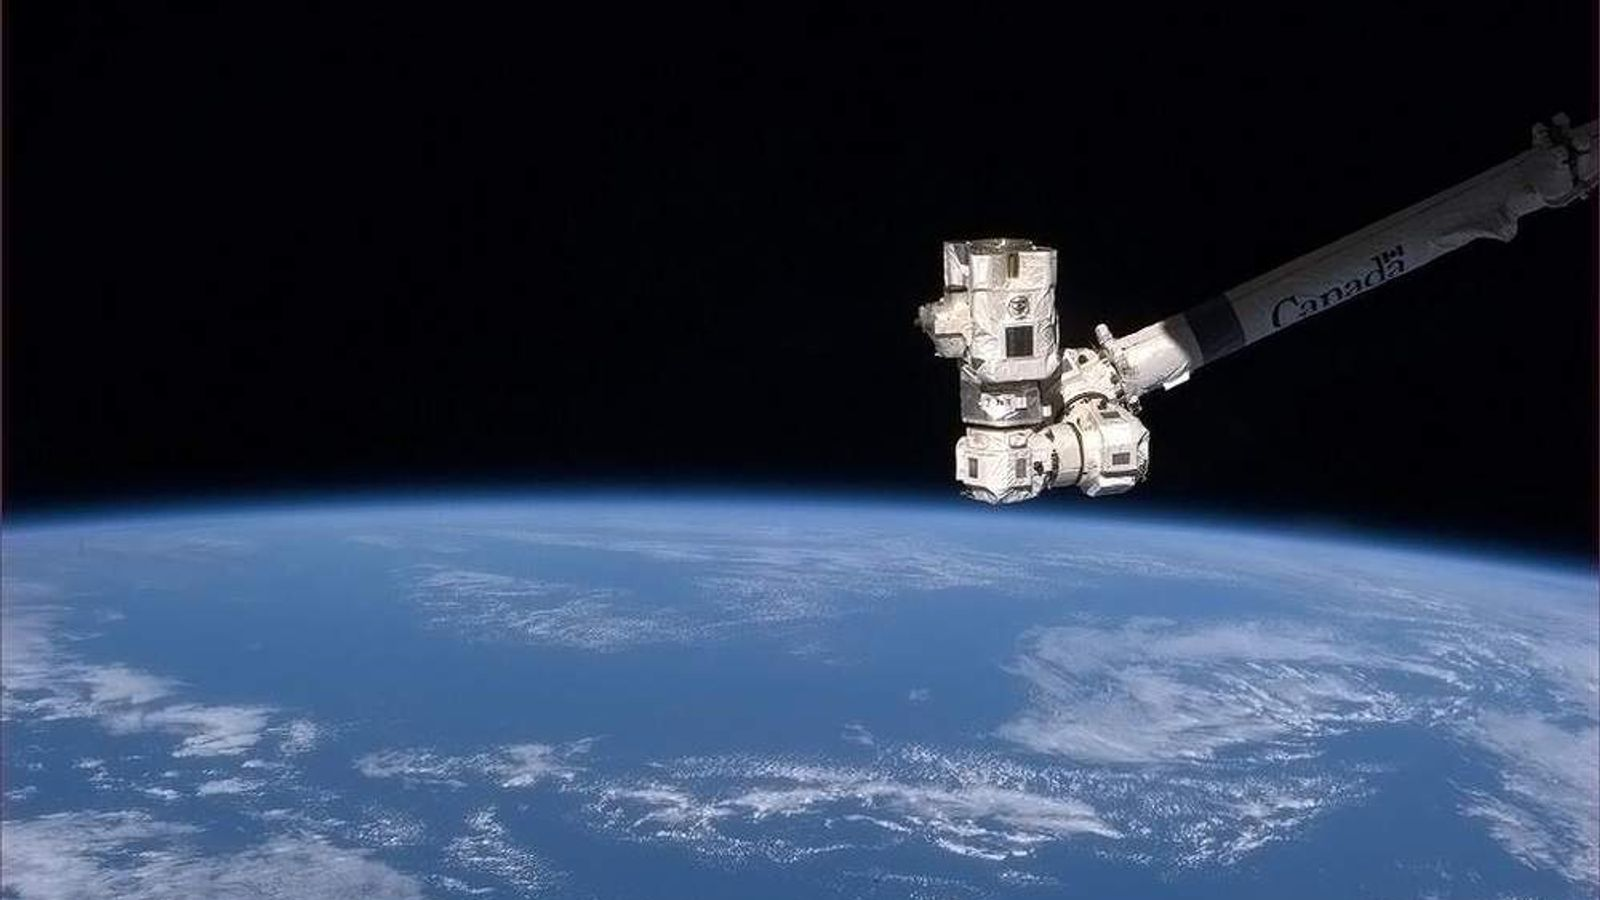 Canadarm2 gives a thumbs-up to the World.